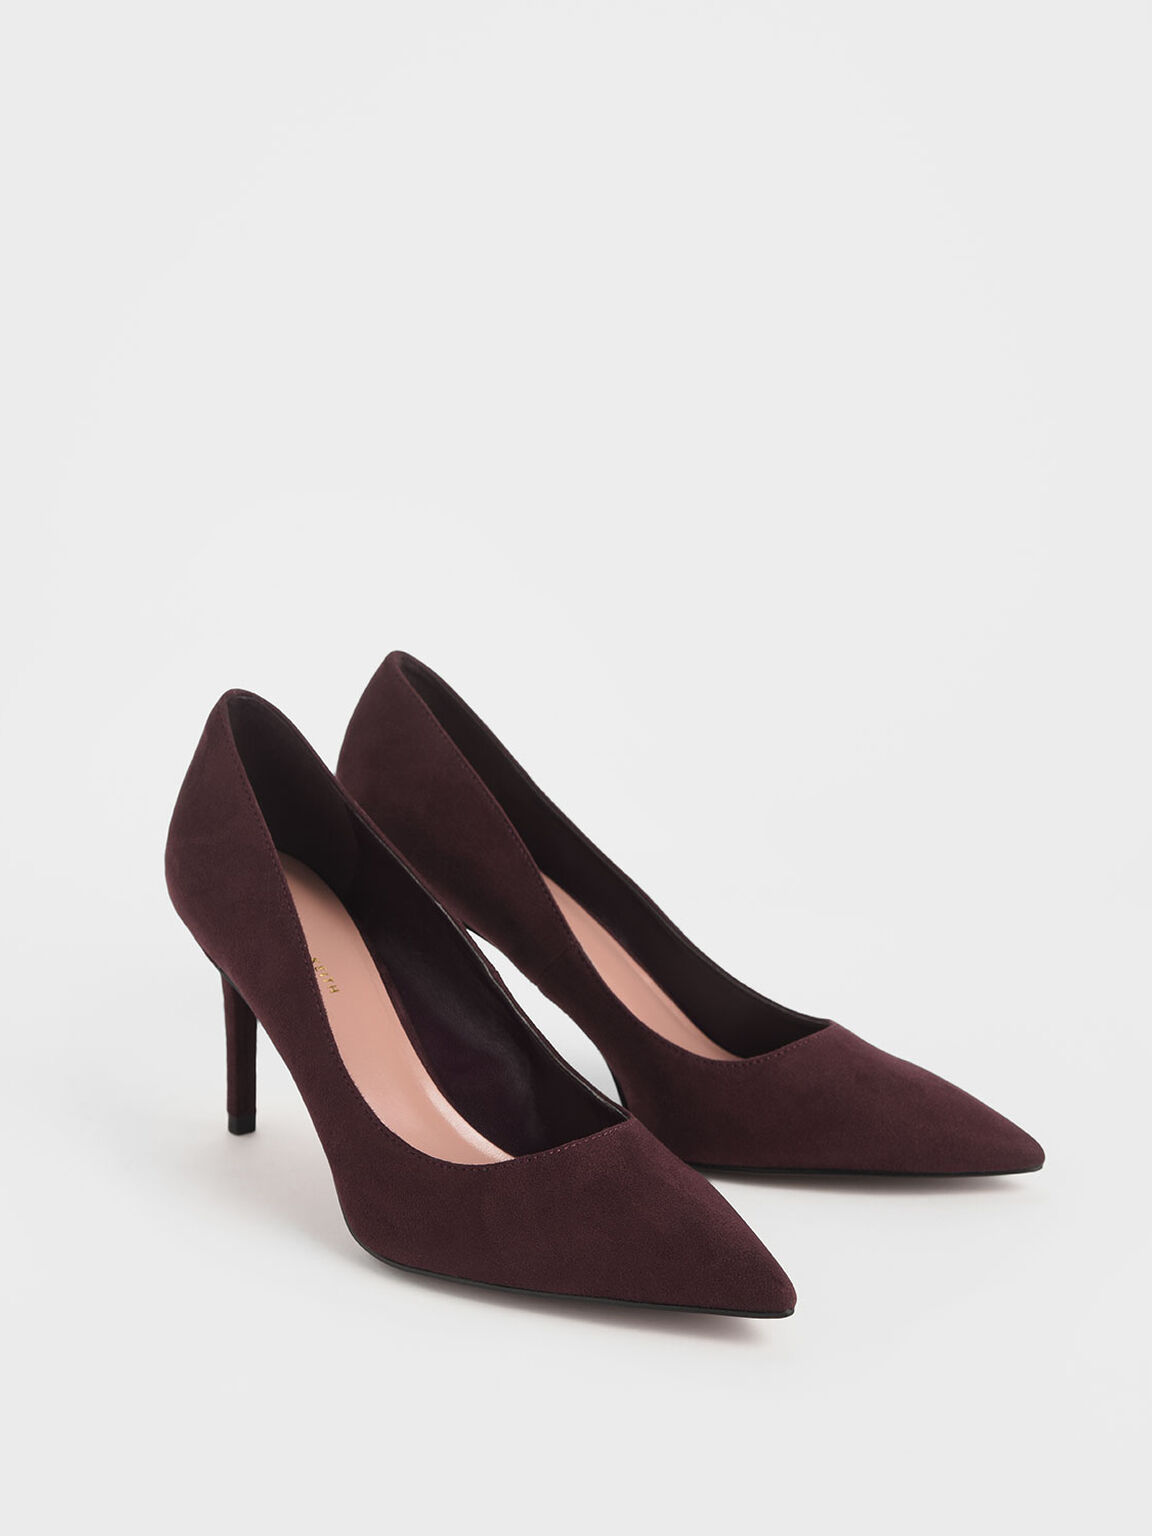 Classic Textured Pointed Toe Pumps, Burgundy, hi-res